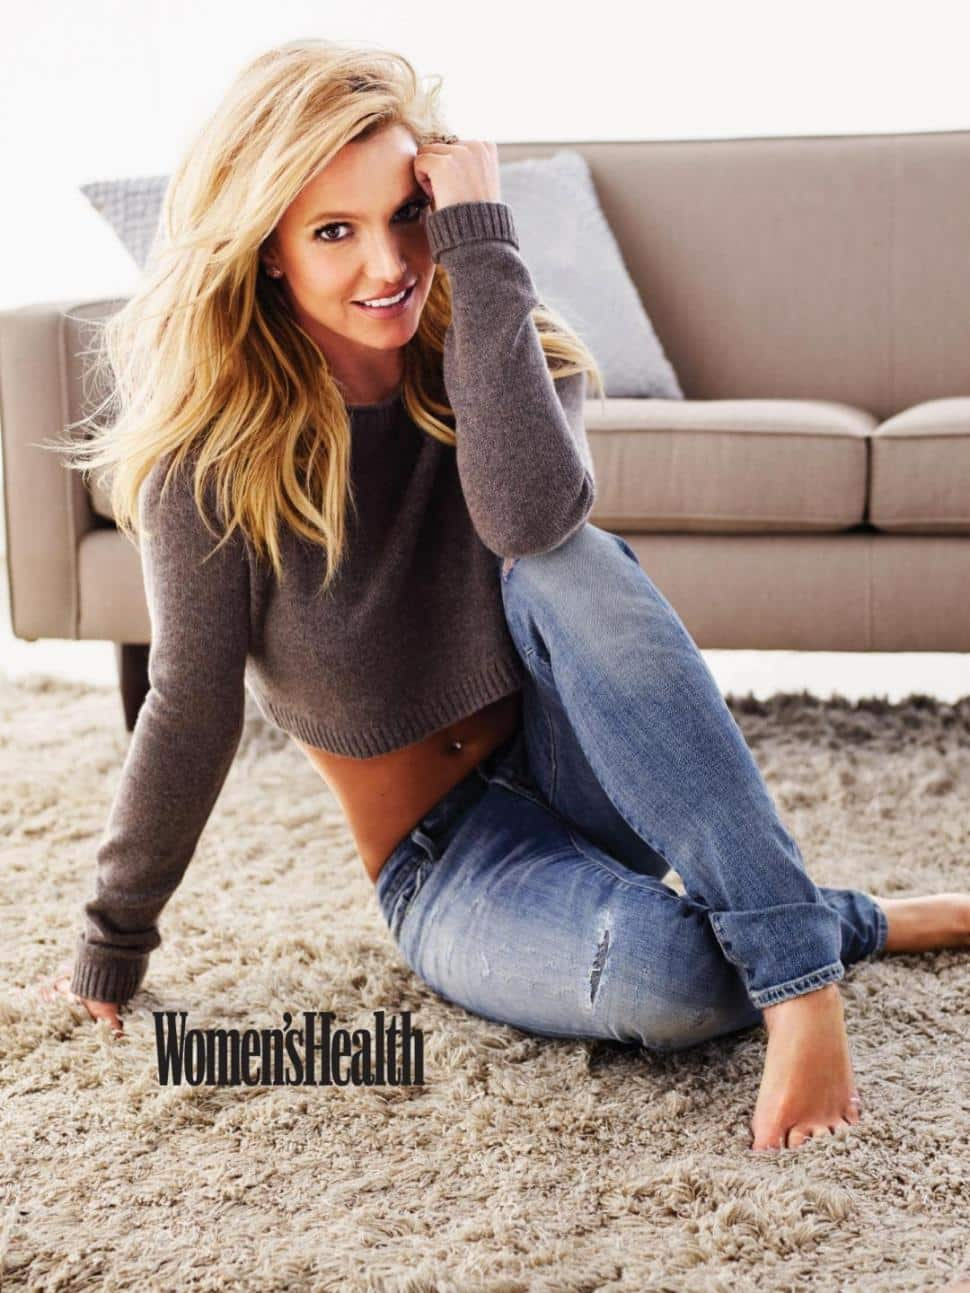 Britney spears heidi klum or photoshop women 39 s health for Best women pictures